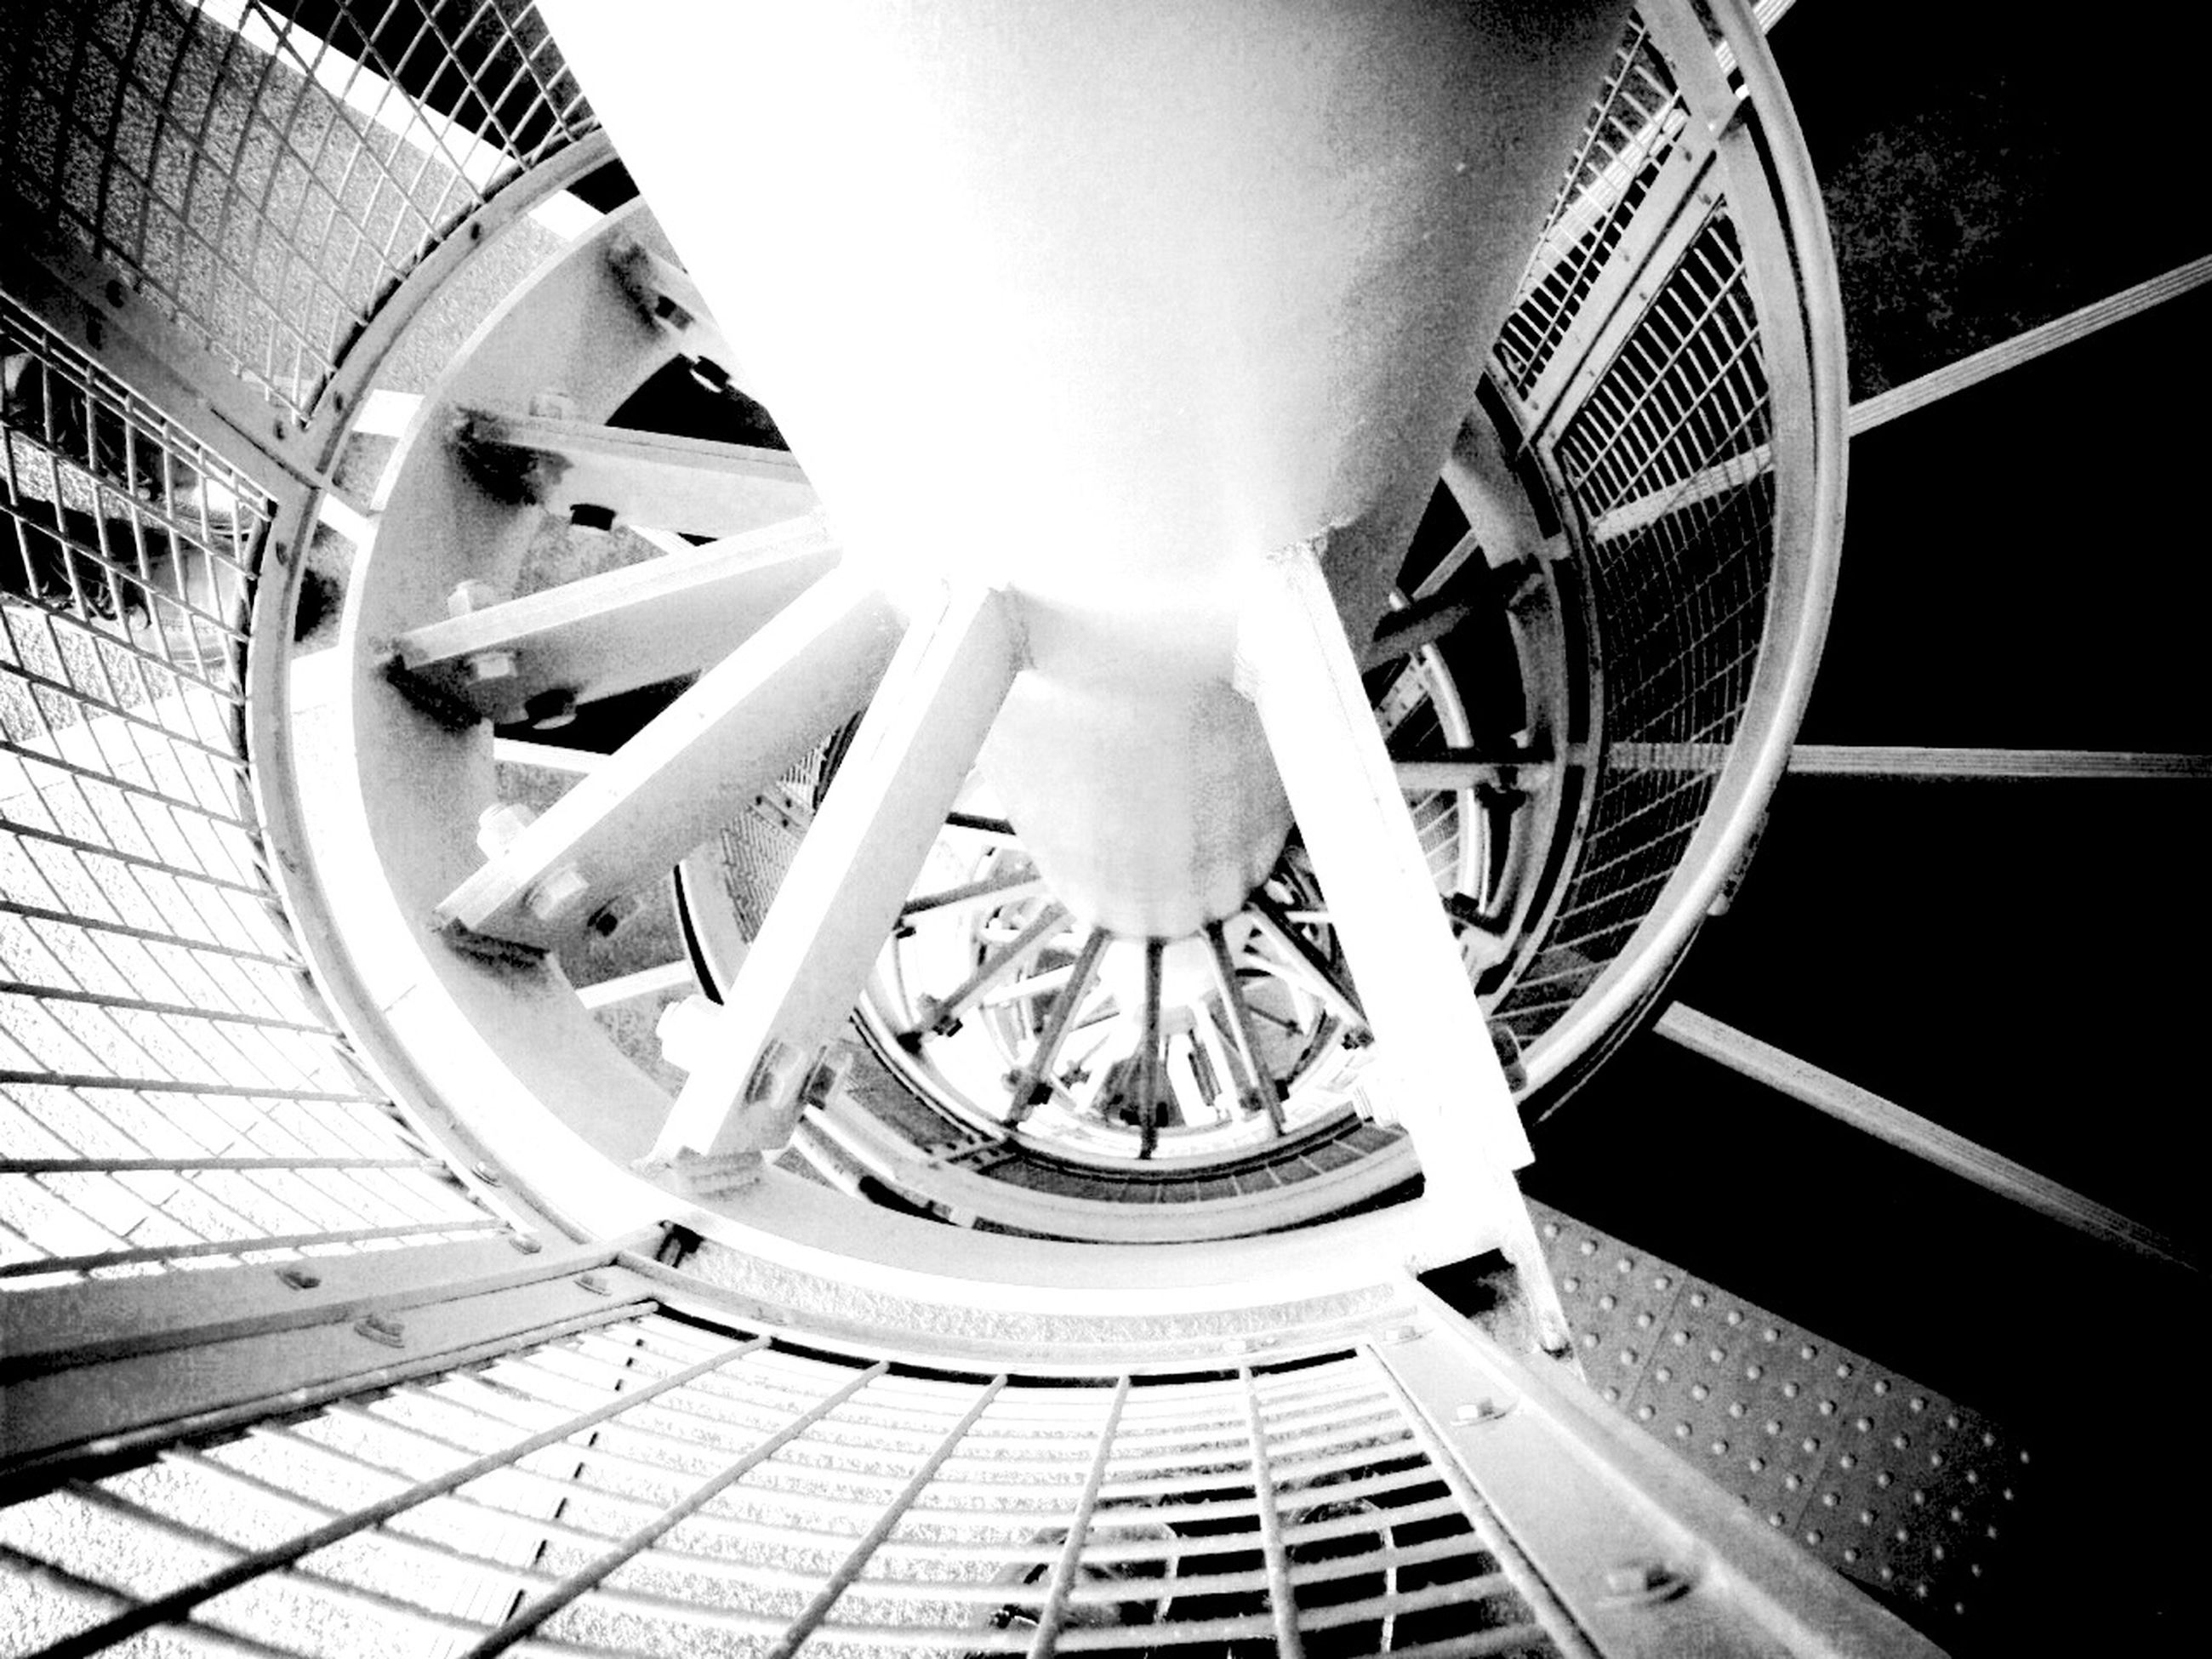 built structure, architecture, low angle view, staircase, steps, steps and staircases, railing, spiral staircase, indoors, metal, no people, wheel, spiral, travel, architectural feature, building exterior, day, transportation, part of, building